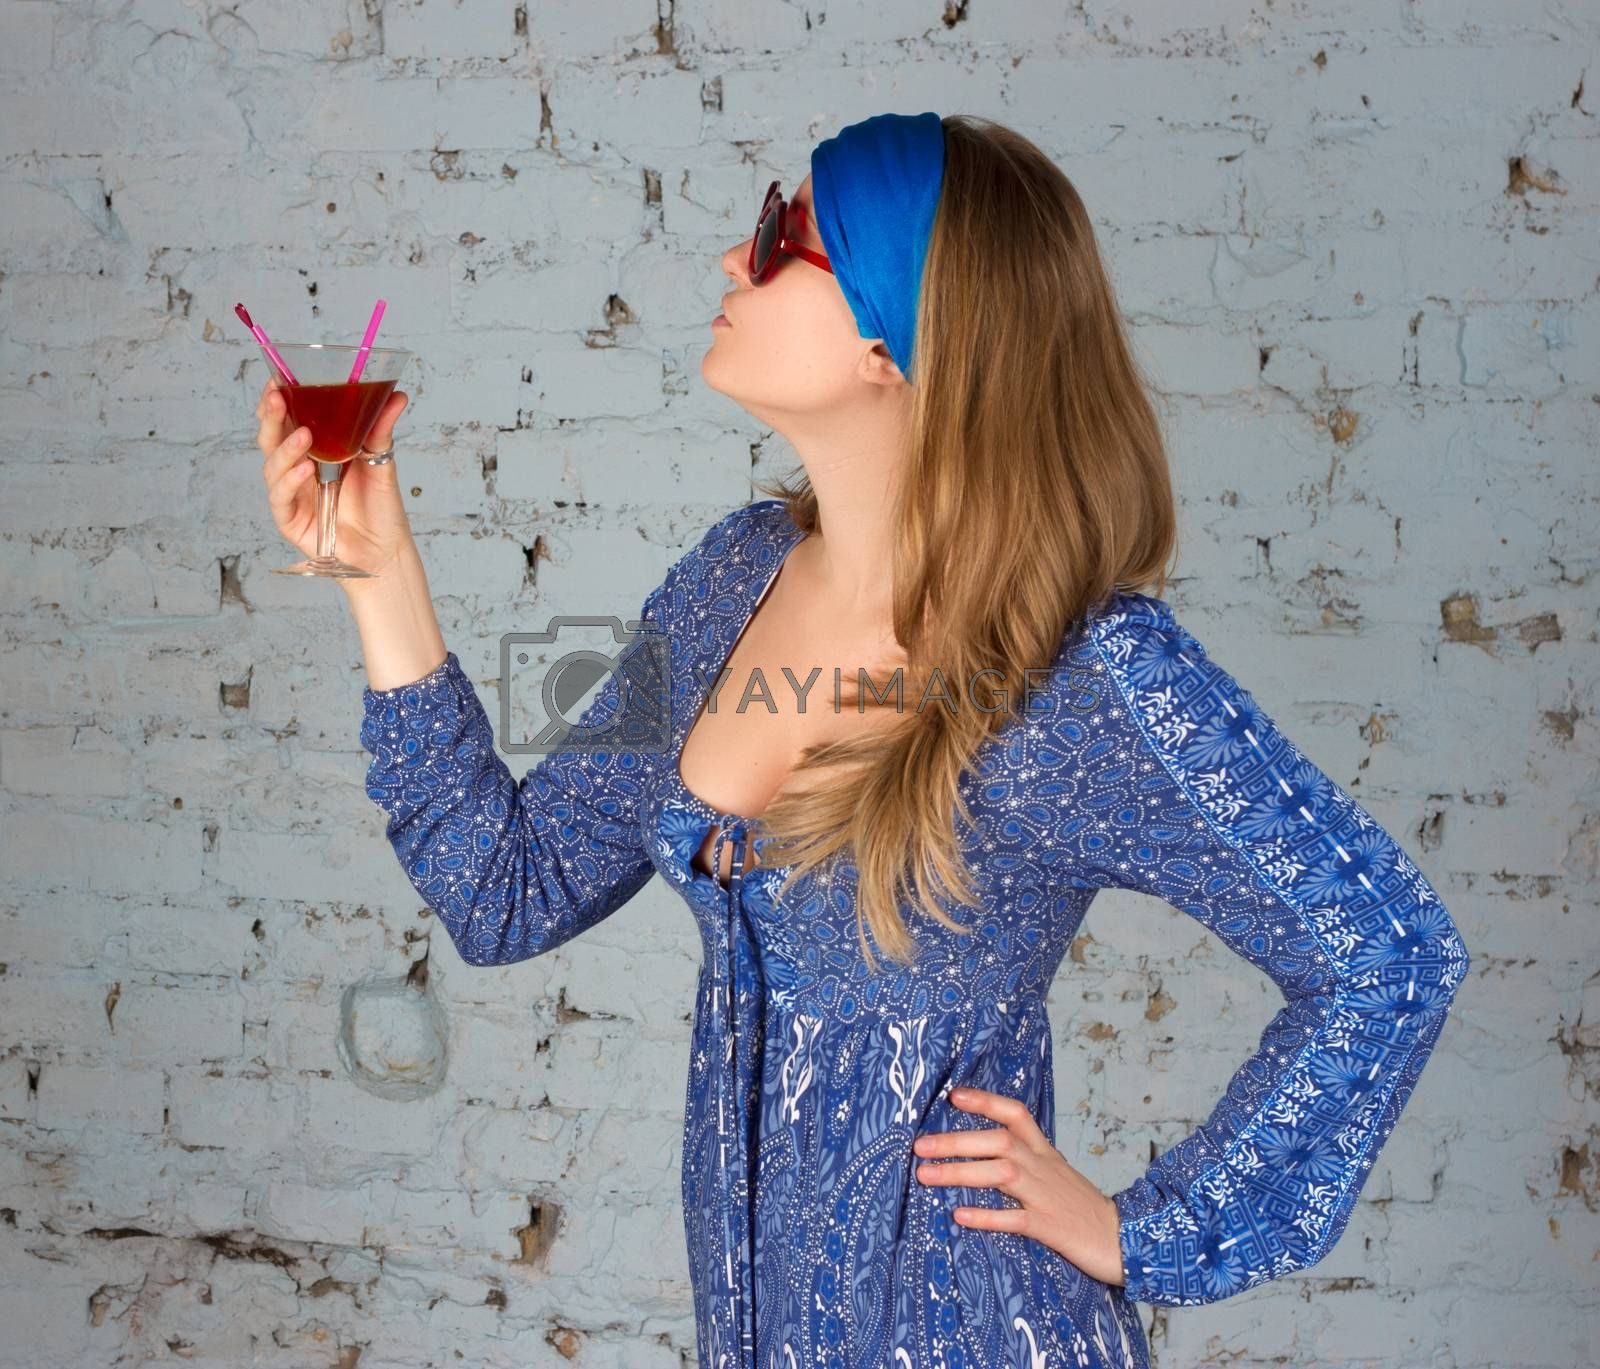 Royalty free image of woman drinking a cocktail by victosha